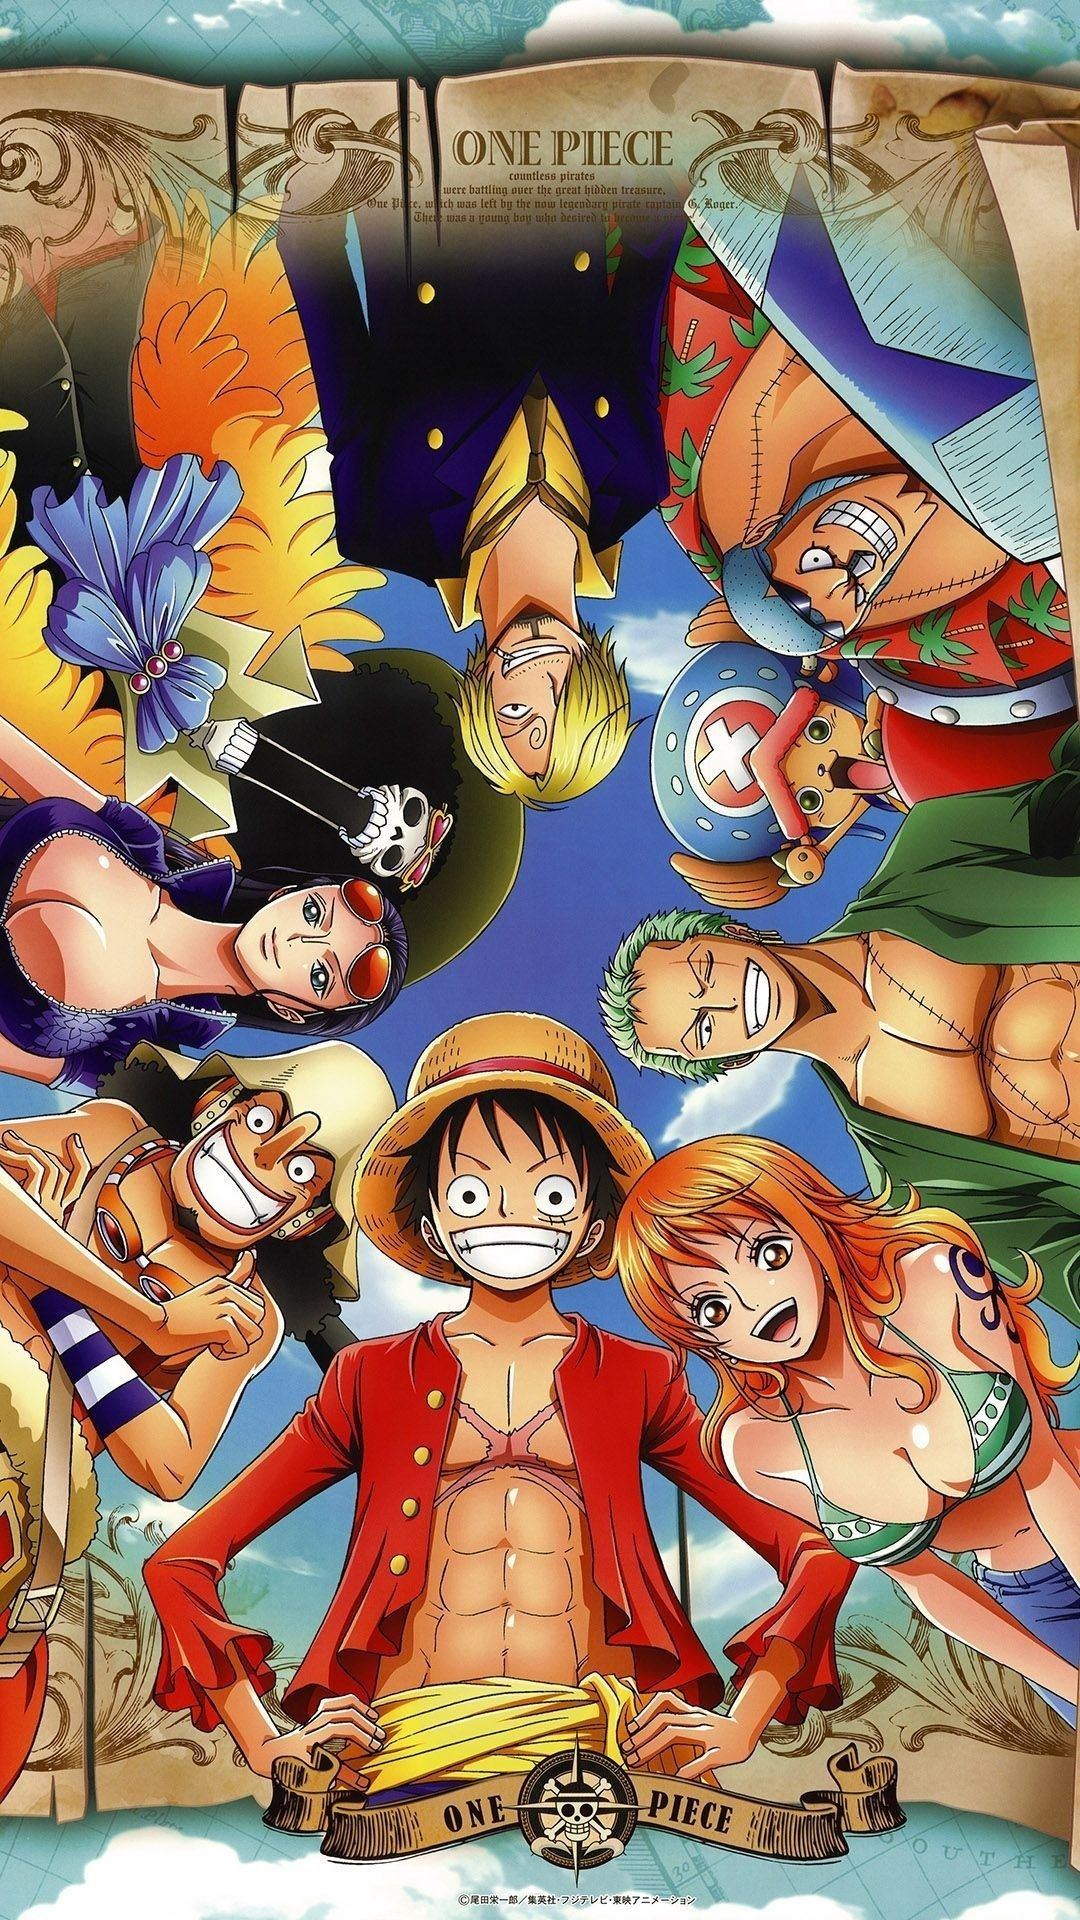 Iphone X Wallpaper One Piece